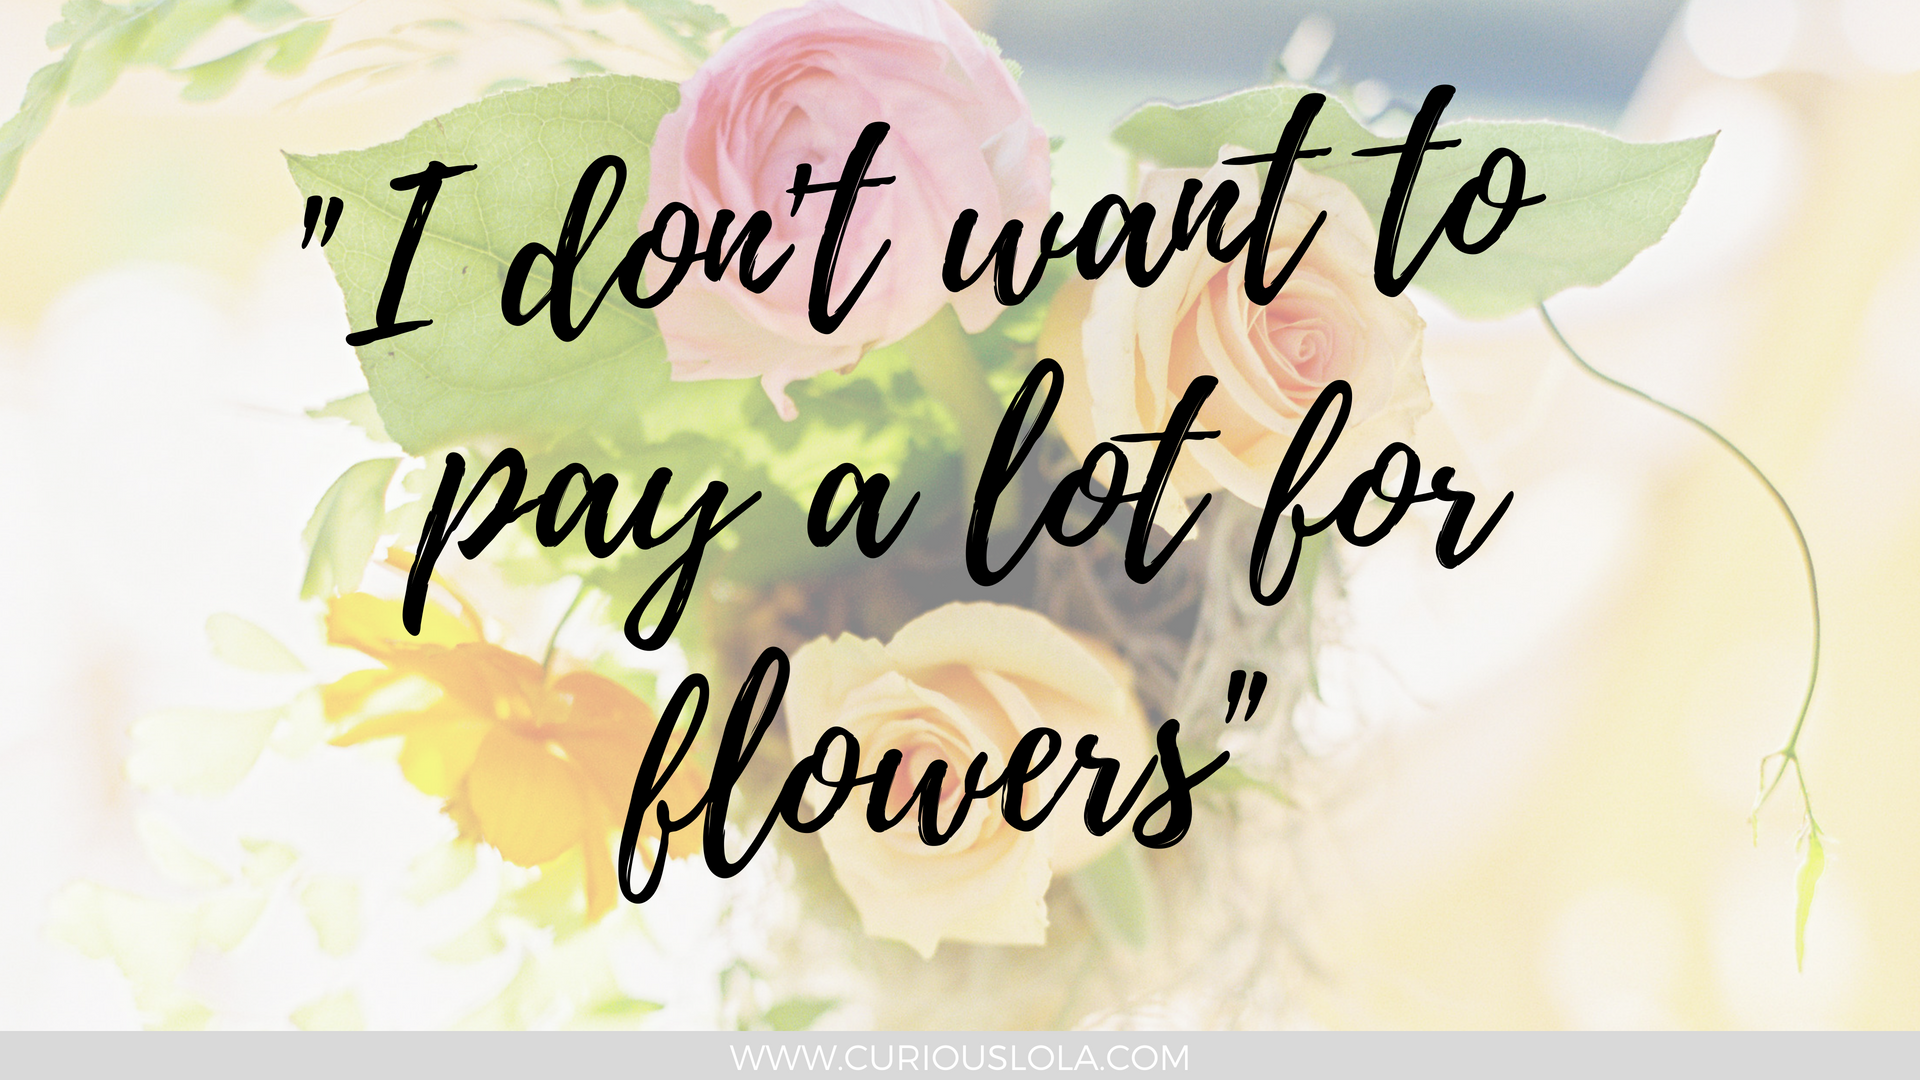 payforflowers.png